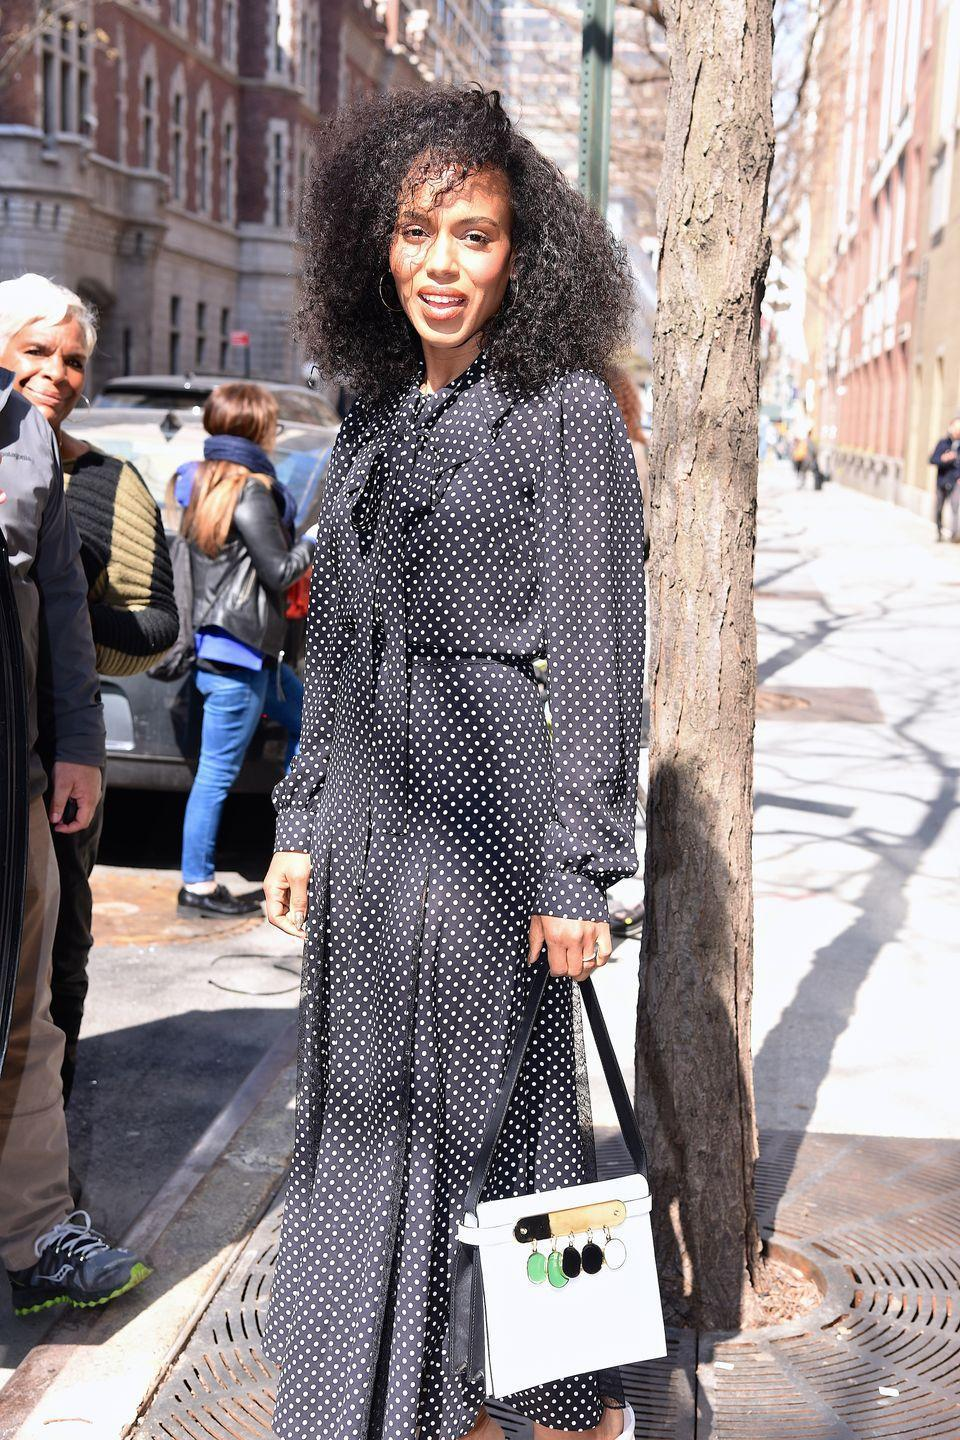 """<p>Summer dresses absolutely have their charms but there is something so romantic about a fabulous fall dress, like this polka dot number on <a href=""""https://www.townandcountrymag.com/leisure/arts-and-culture/a33445181/kerry-washington-aclu-documentary-september-issue-cover-story-interview/"""" rel=""""nofollow noopener"""" target=""""_blank"""" data-ylk=""""slk:Kerry Washington"""" class=""""link rapid-noclick-resp"""">Kerry Washington</a>. Juxtapose the girly with a touch of high-octane glam, in the form of white-hot leather boots and bag, plus the perfect pair of <a href=""""https://www.townandcountrymag.com/style/jewelry-and-watches/a36100206/roberto-coin-gold-hoops-review/"""" rel=""""nofollow noopener"""" target=""""_blank"""" data-ylk=""""slk:gold hoops"""" class=""""link rapid-noclick-resp"""">gold hoops</a>.</p>"""